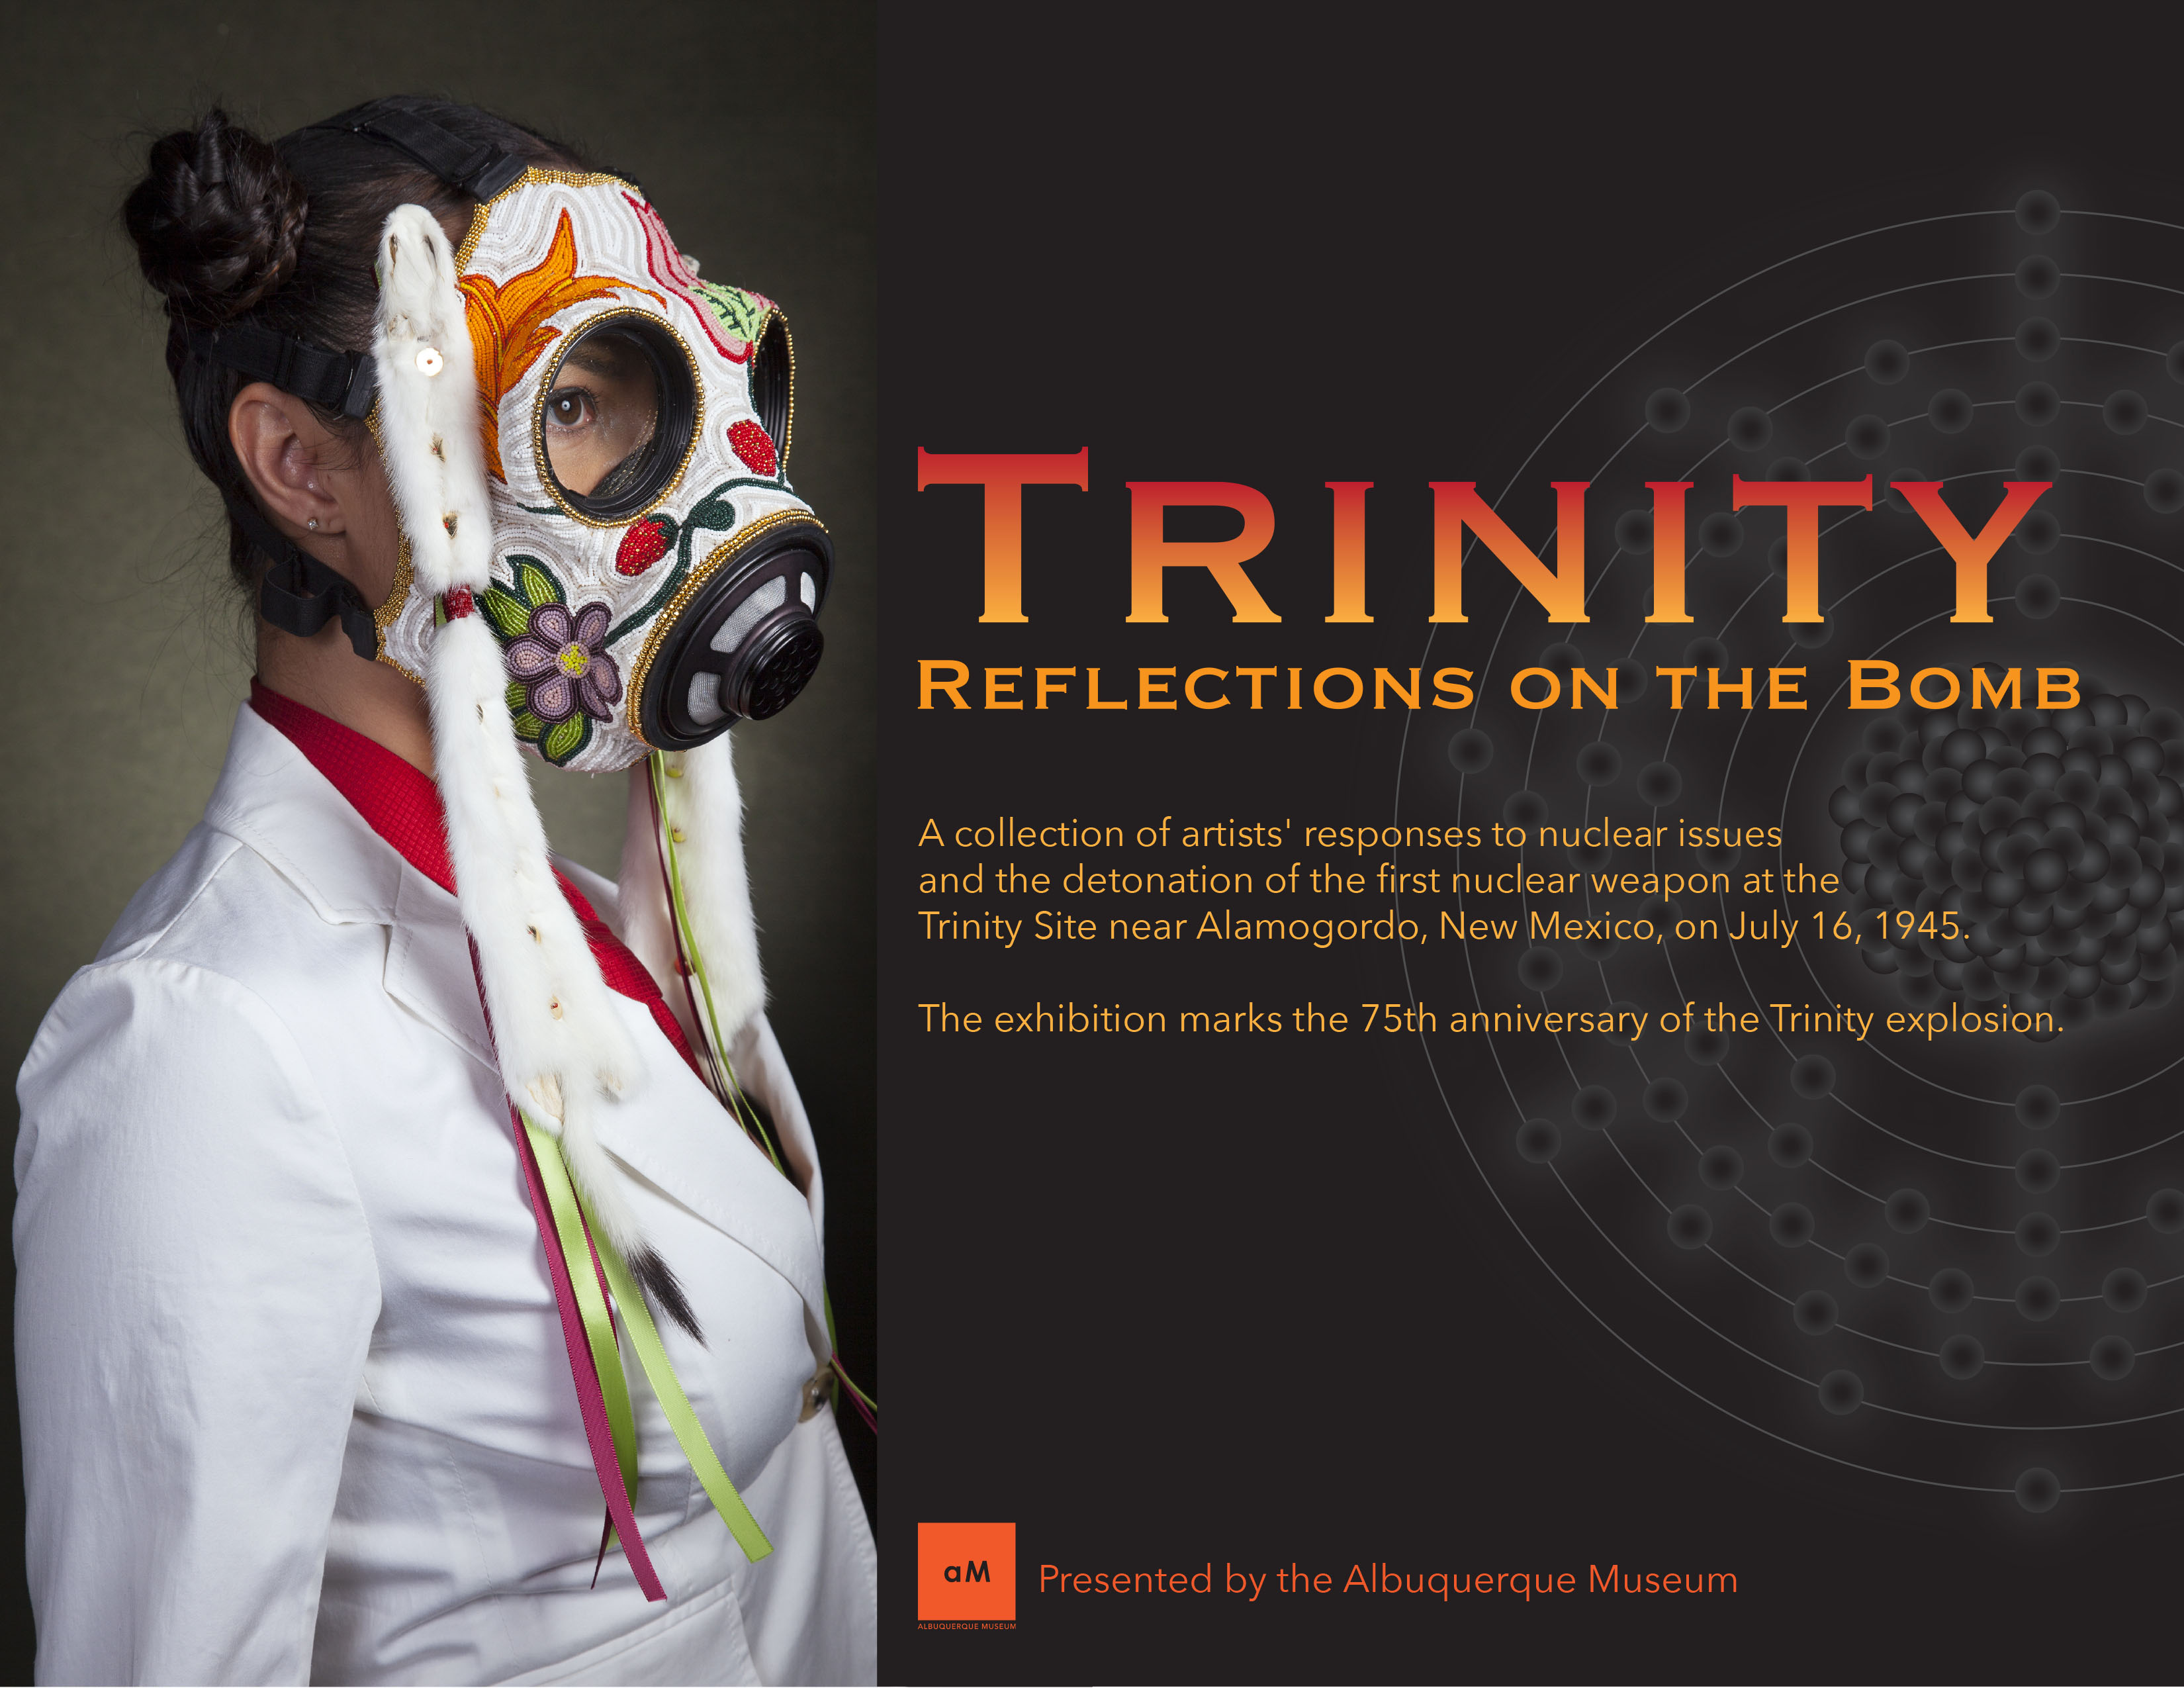 Trinity: Reflections on the Bomb. A collection of artists' responses to nuclear issues and the detonation of the first nuclear weapon at the Trinity Site near Alamogordo, New Mexico, on July 16, 1945. Presented by the Albuquerque Museum.